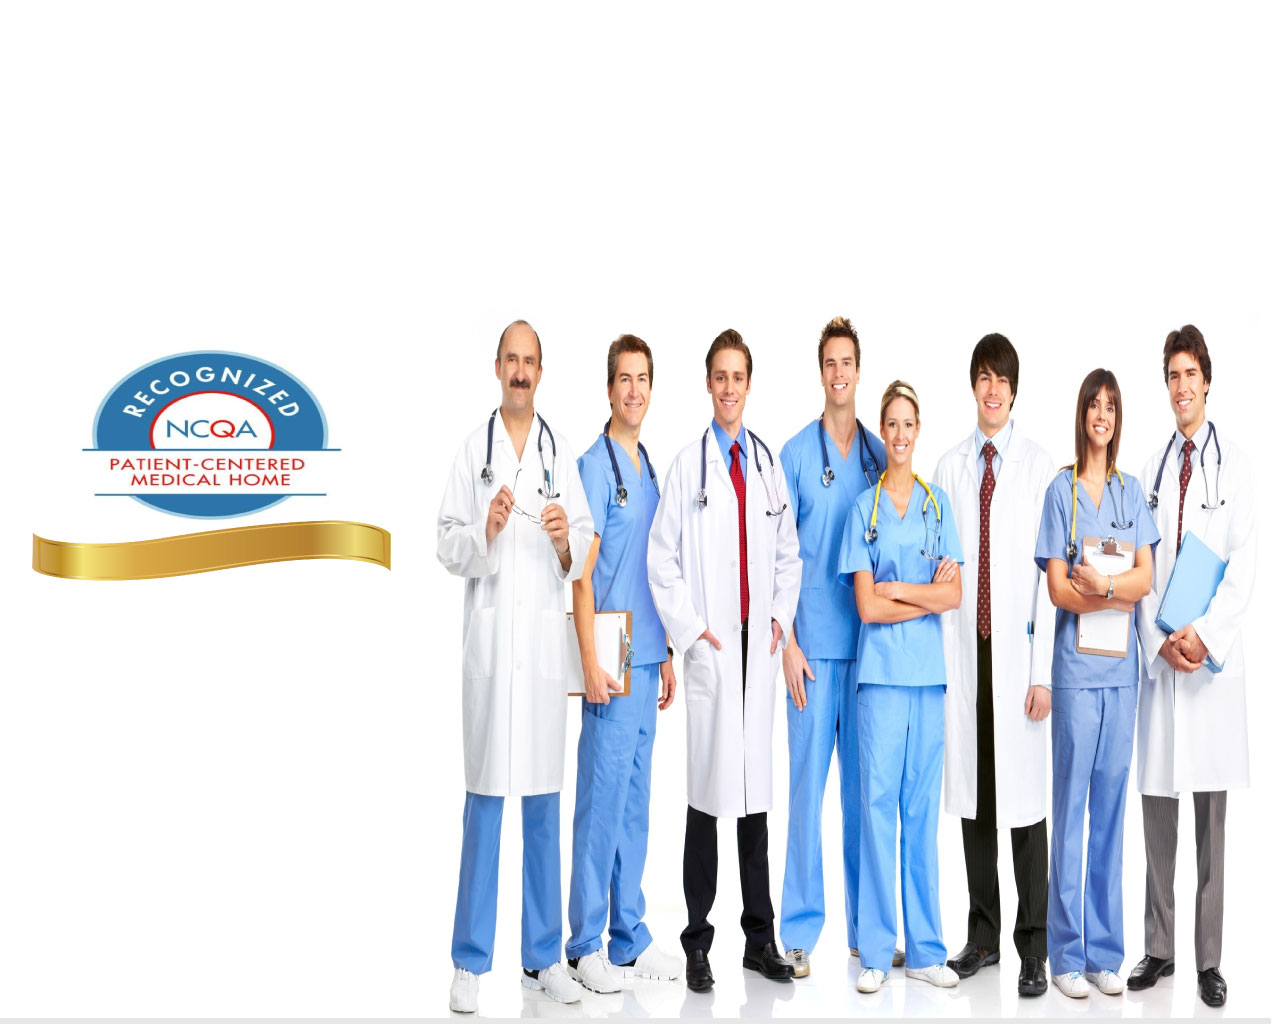 A Recognized Level 3 Patient-Centered Medical Home